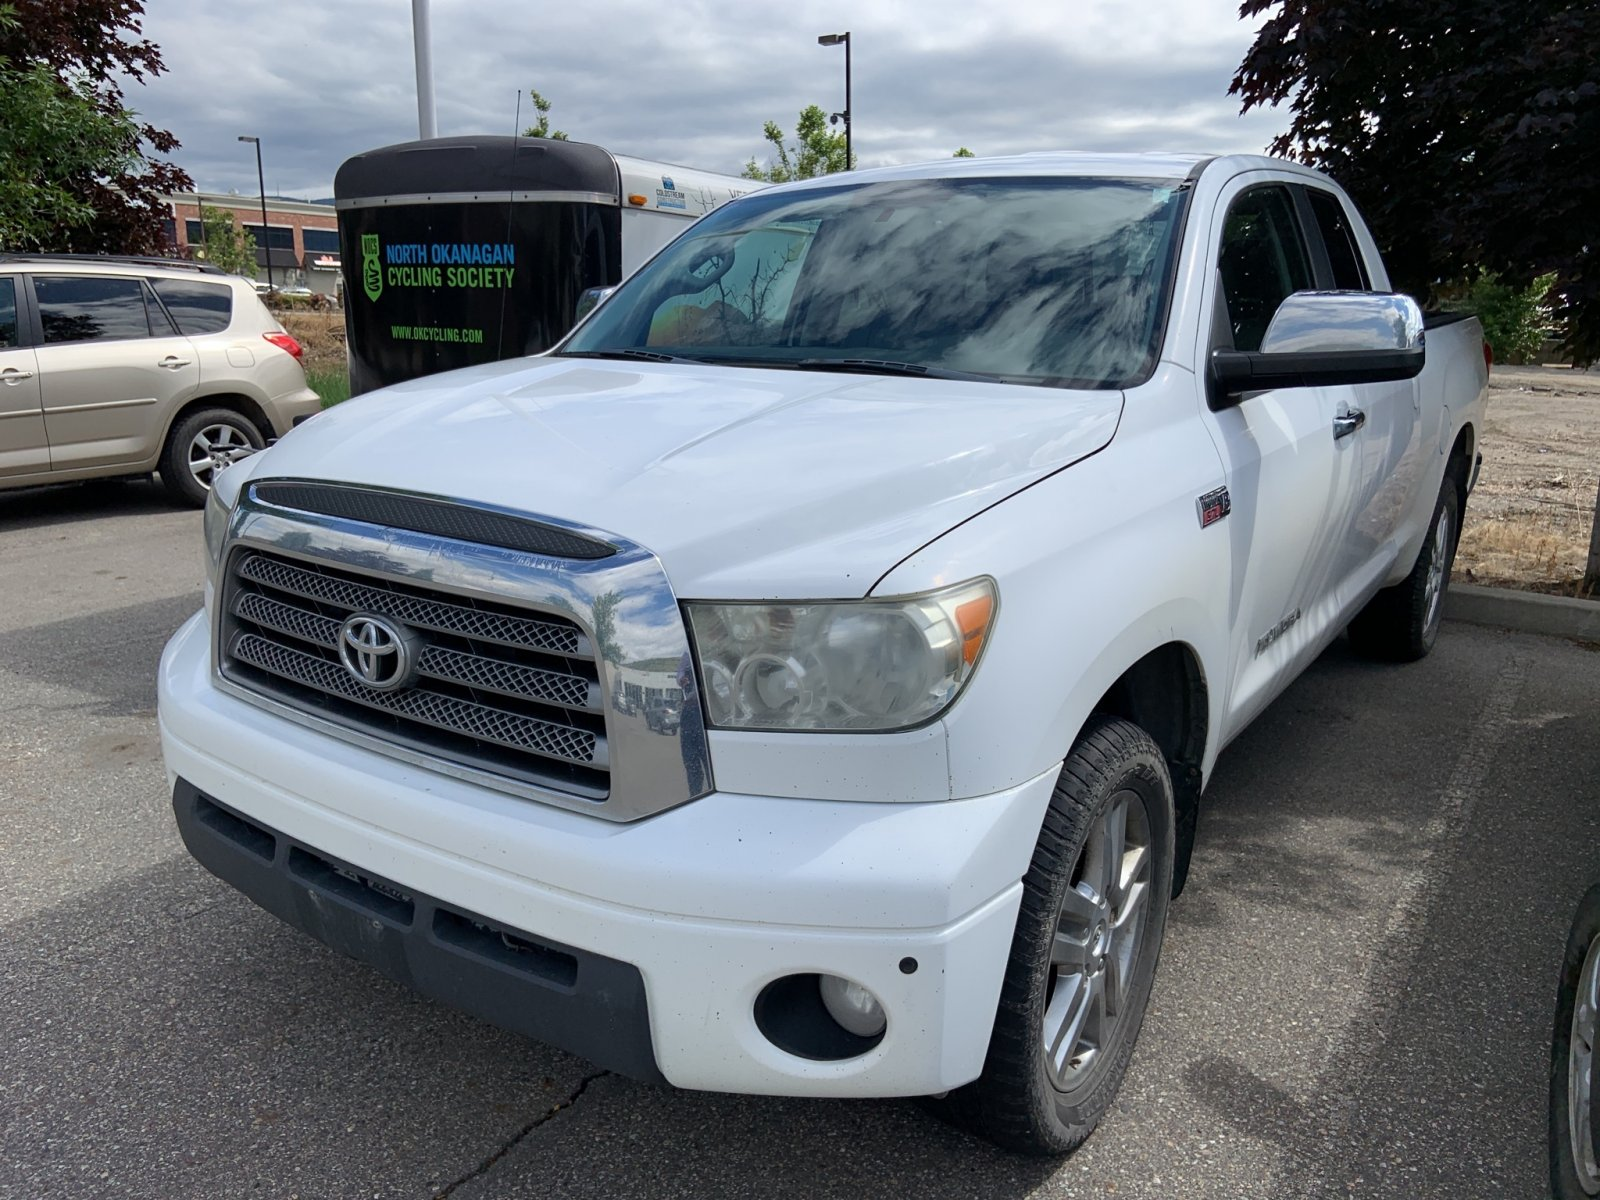 2007 Toyota Truck TUNDRA 4X4 DOUBLE CAB LIMITED (V2807C) Main Image